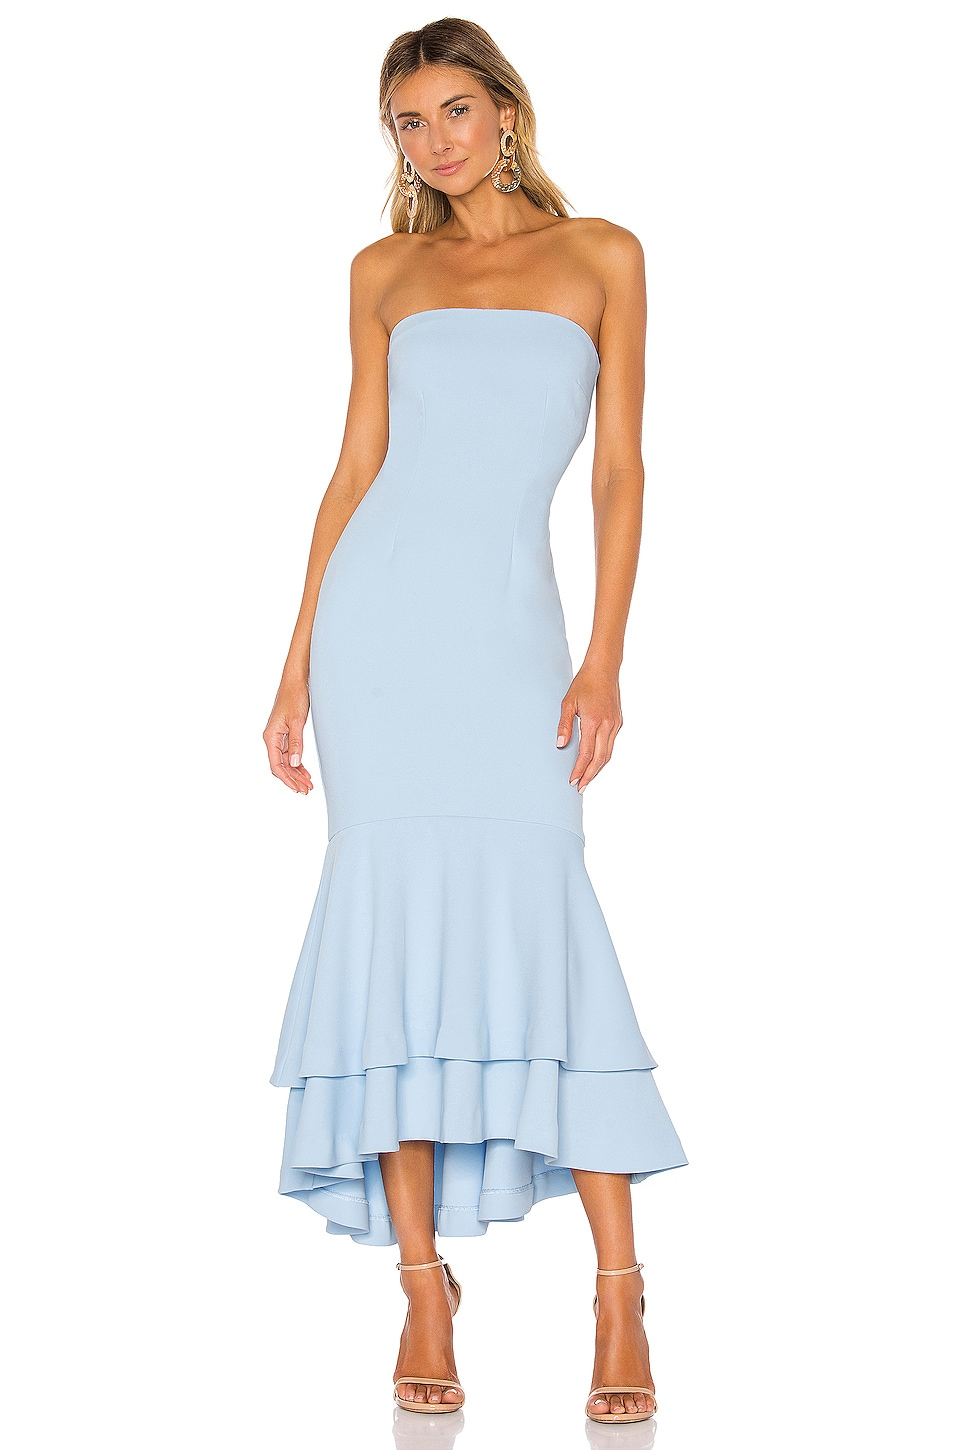 Lovers + Friends Dillion Midi in Baby Blue